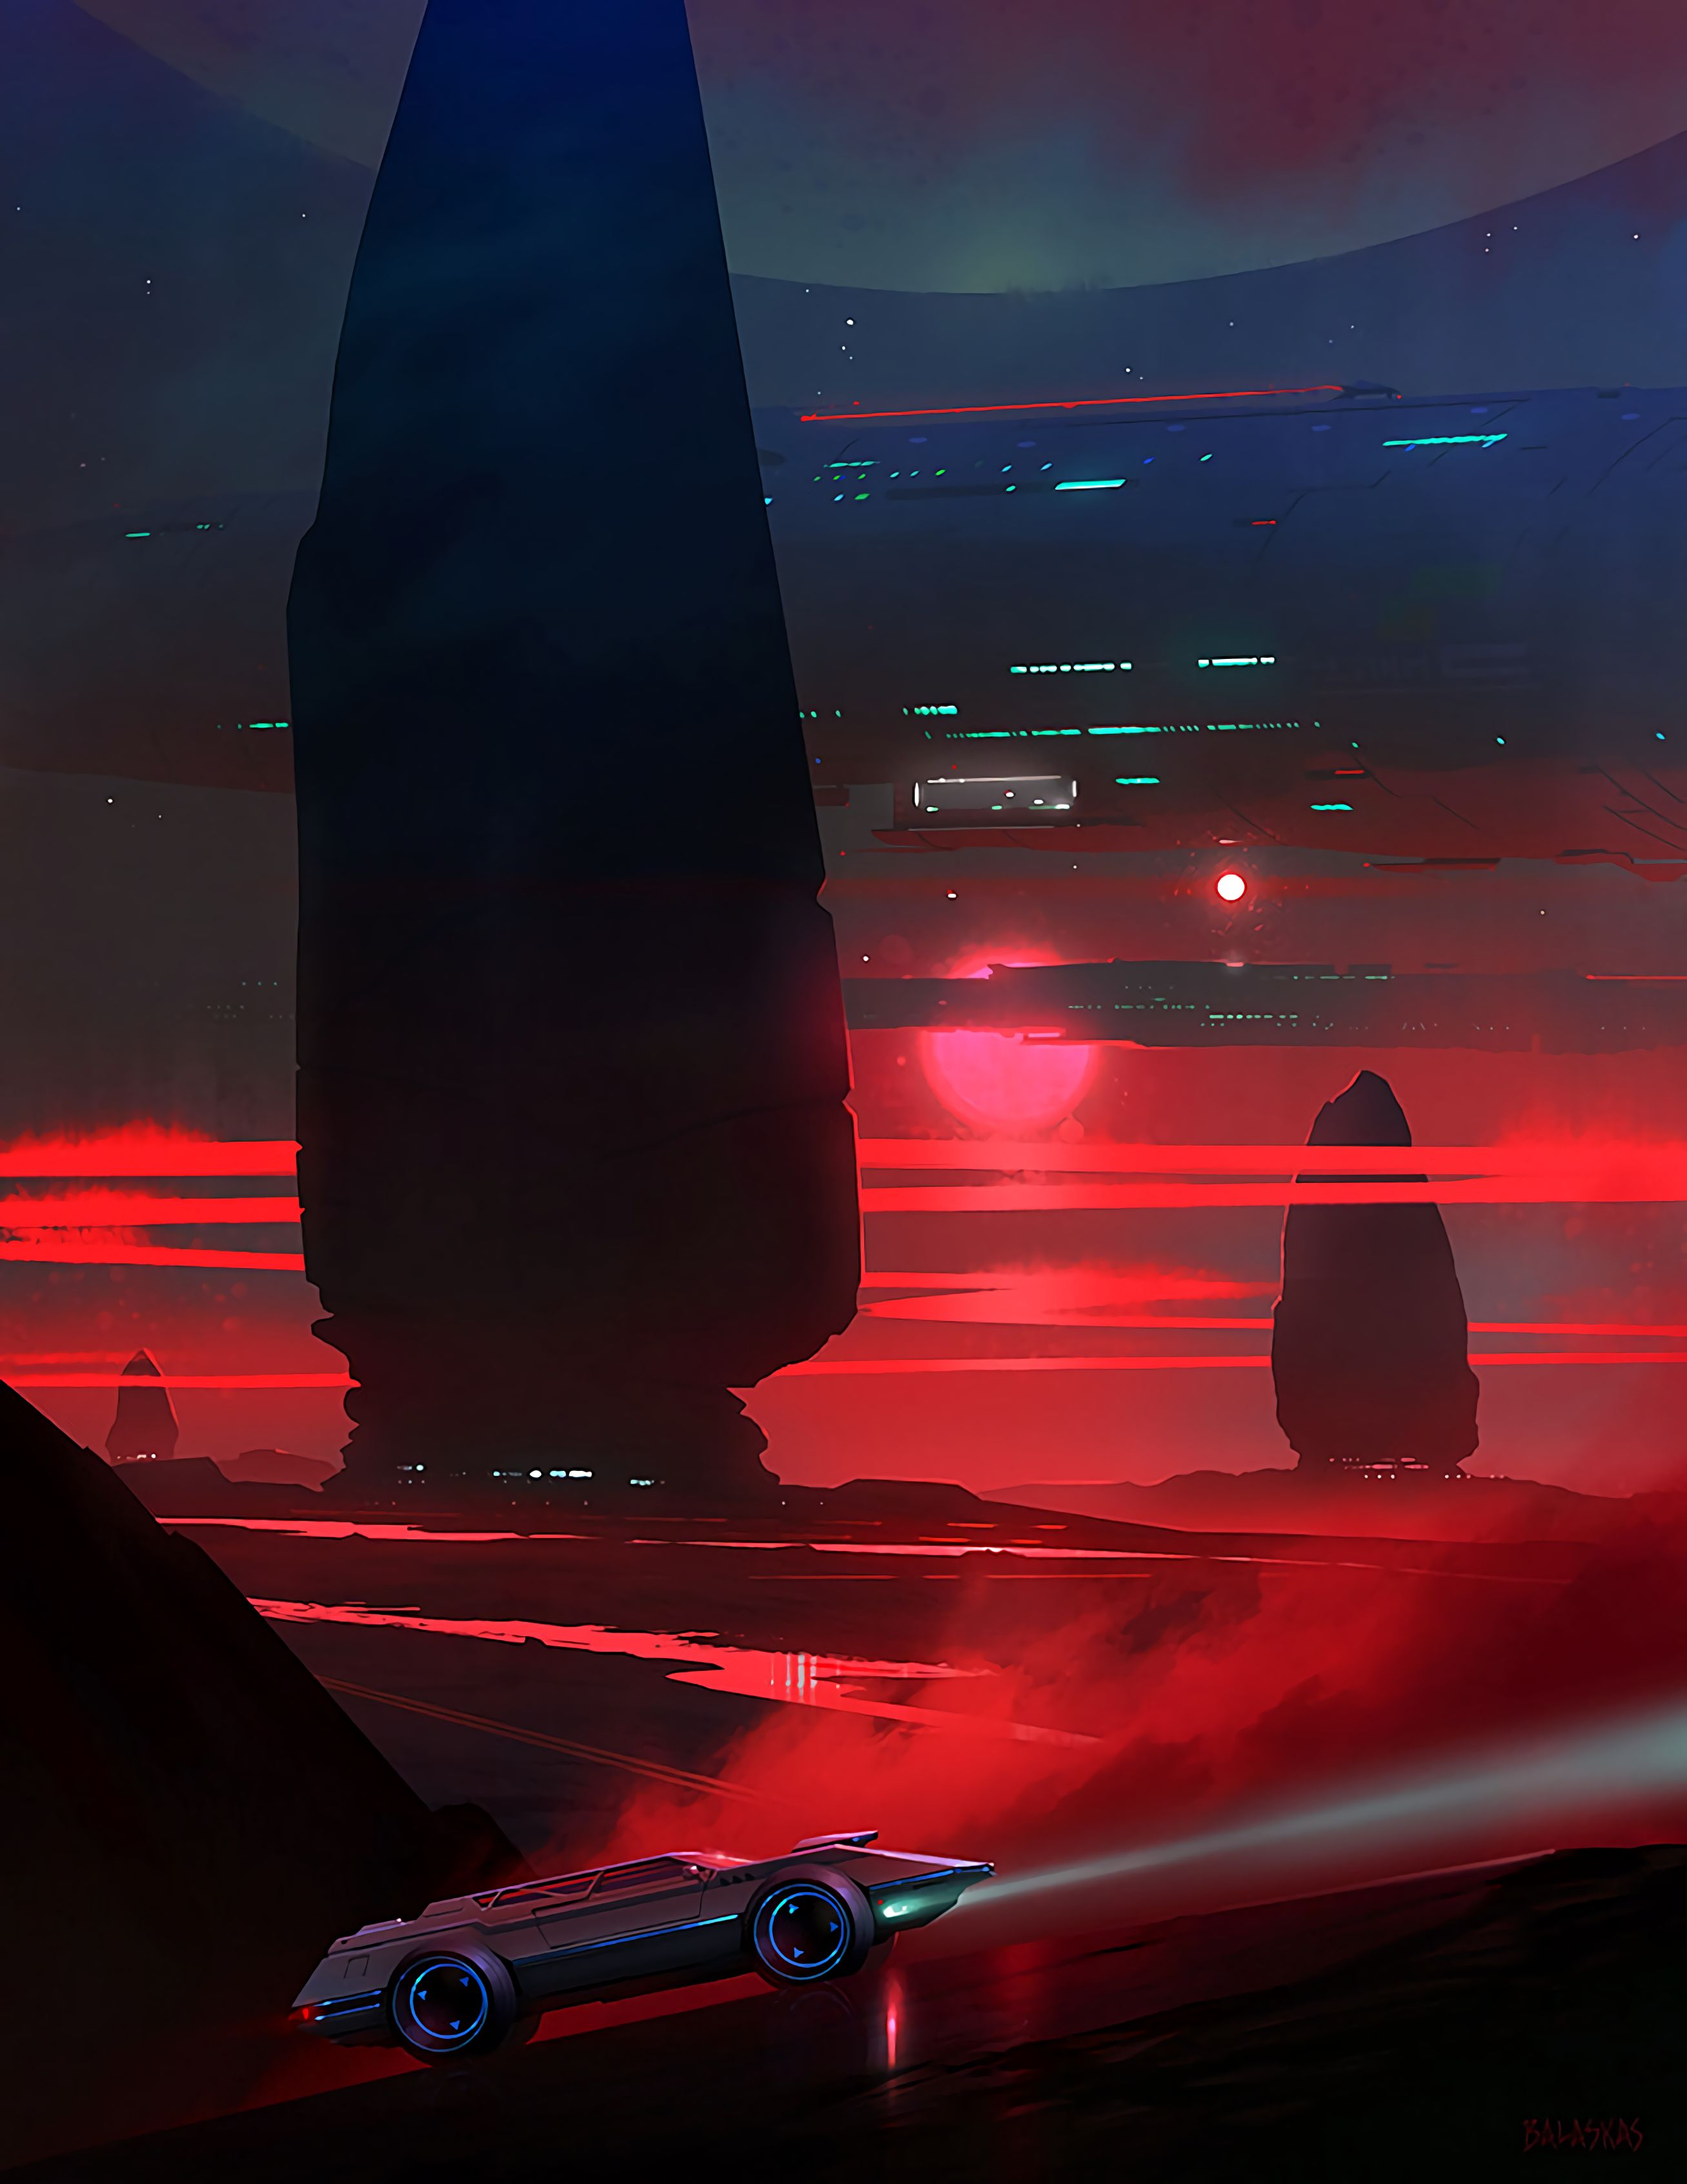 54022 Screensavers and Wallpapers Sci-Fi for phone. Download Art, Night, Car, Futurism, Sci-Fi, Spaceship pictures for free